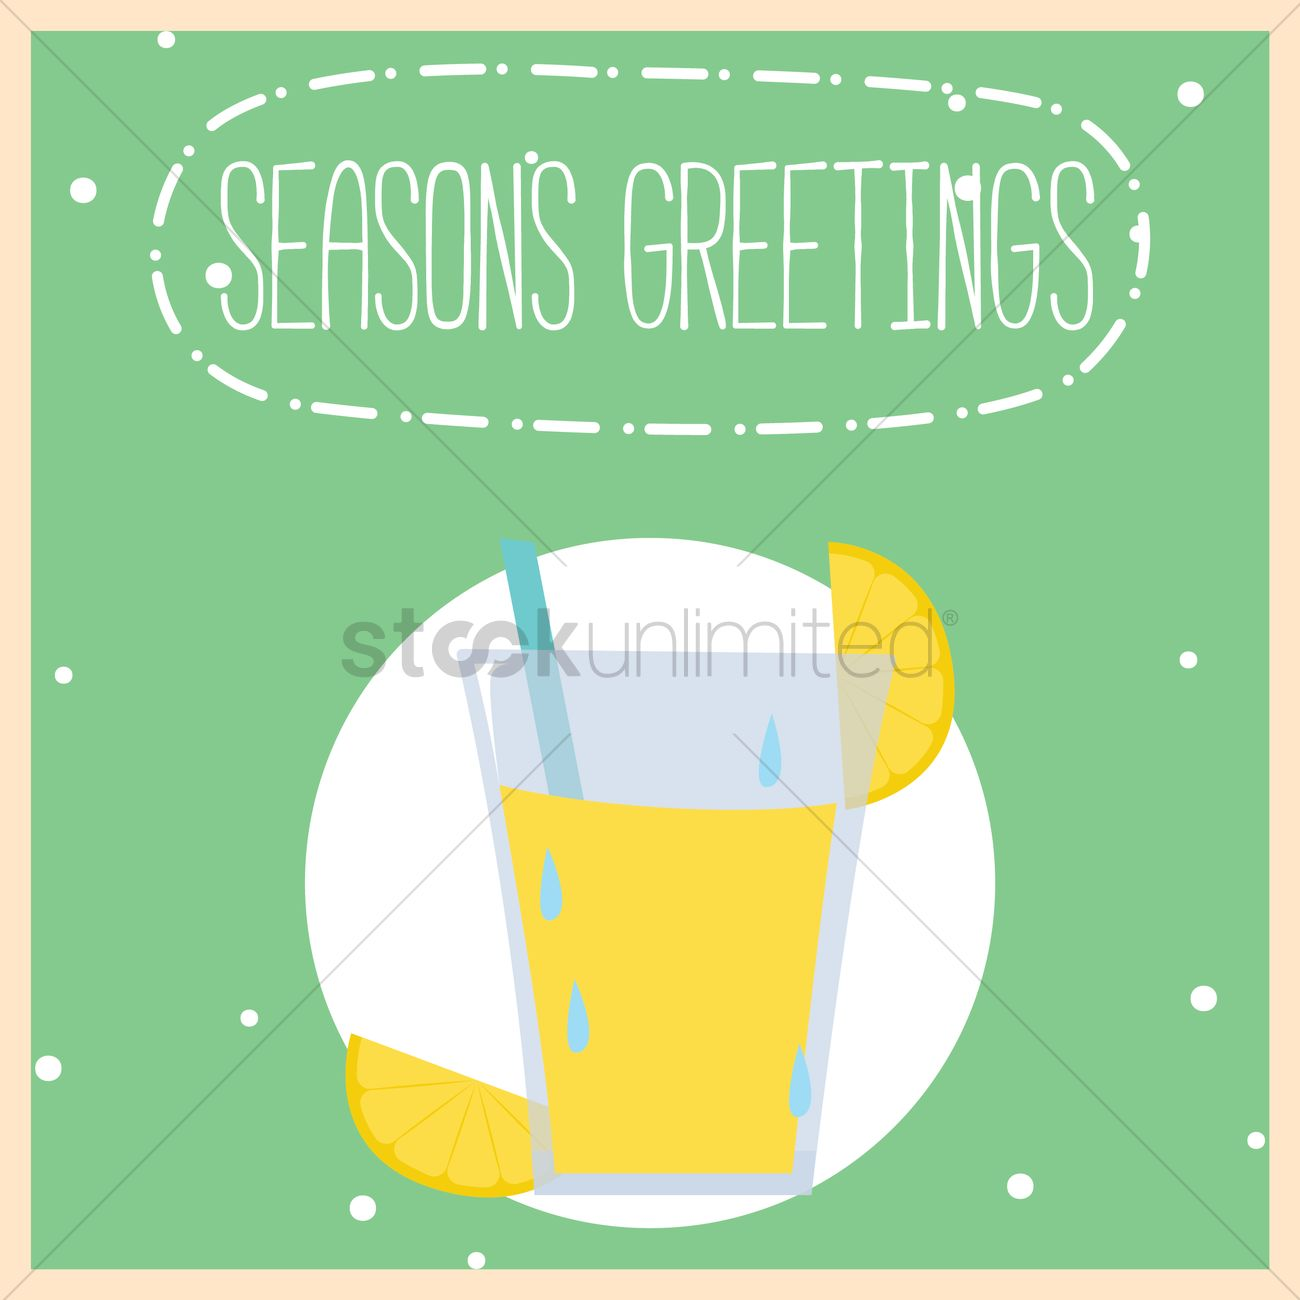 Seasons Greeting Message Vector Image 1827279 Stockunlimited